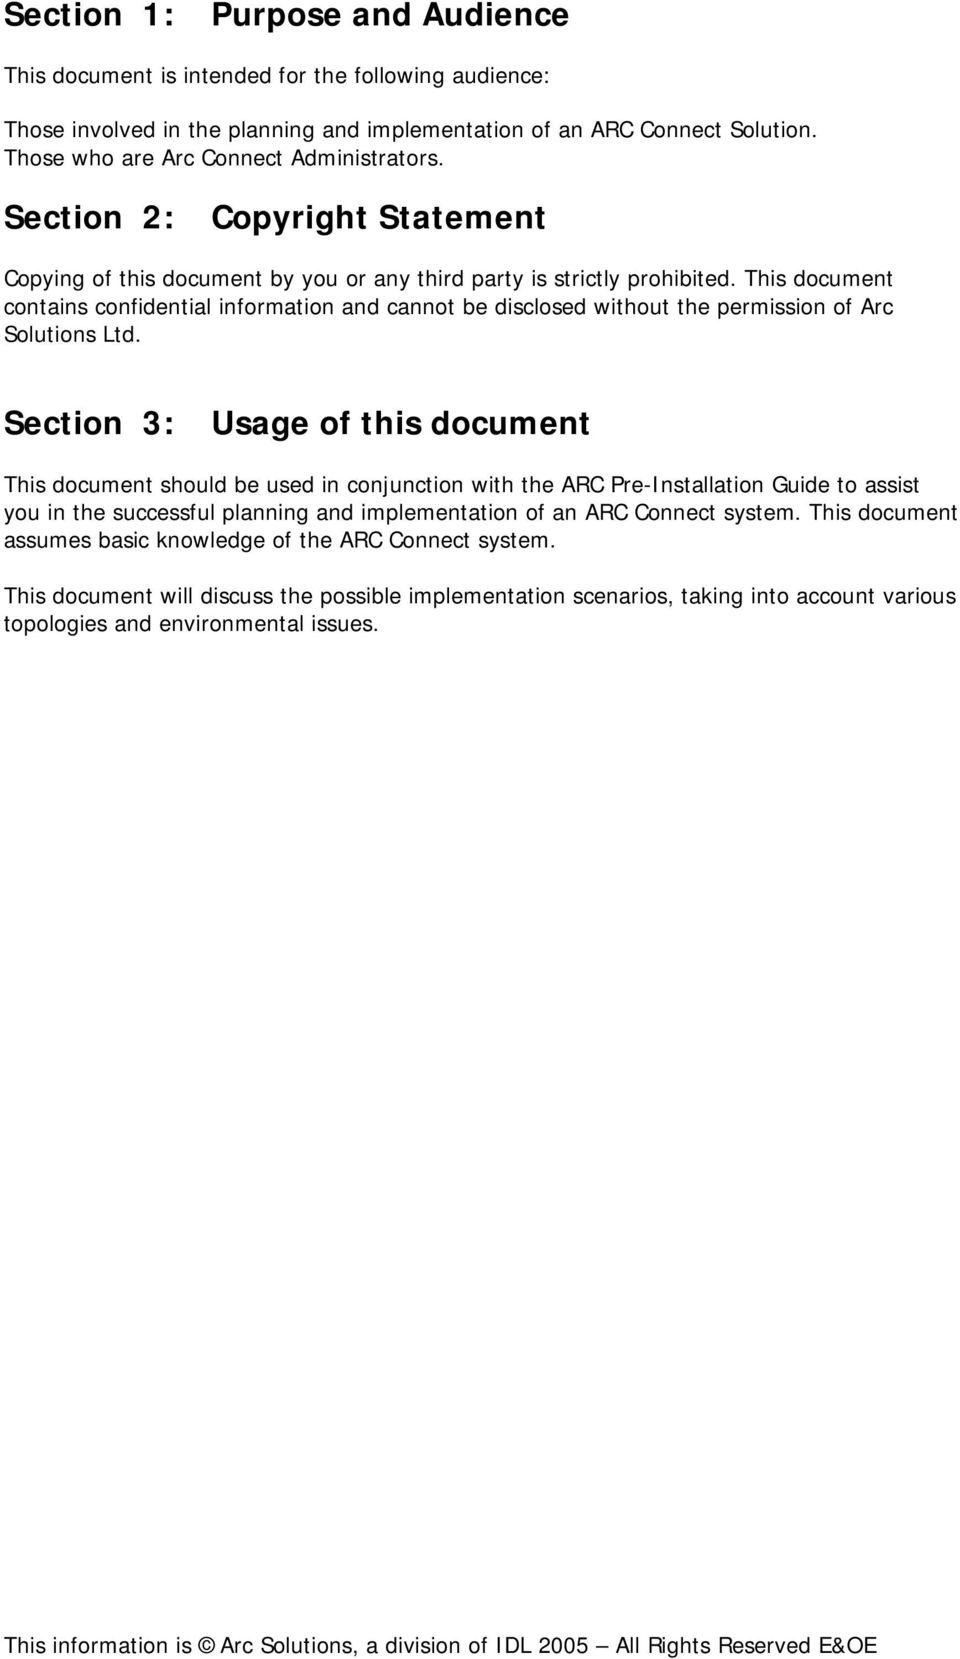 This document contains confidential information and cannot be disclosed without the permission of Arc Solutions Ltd.